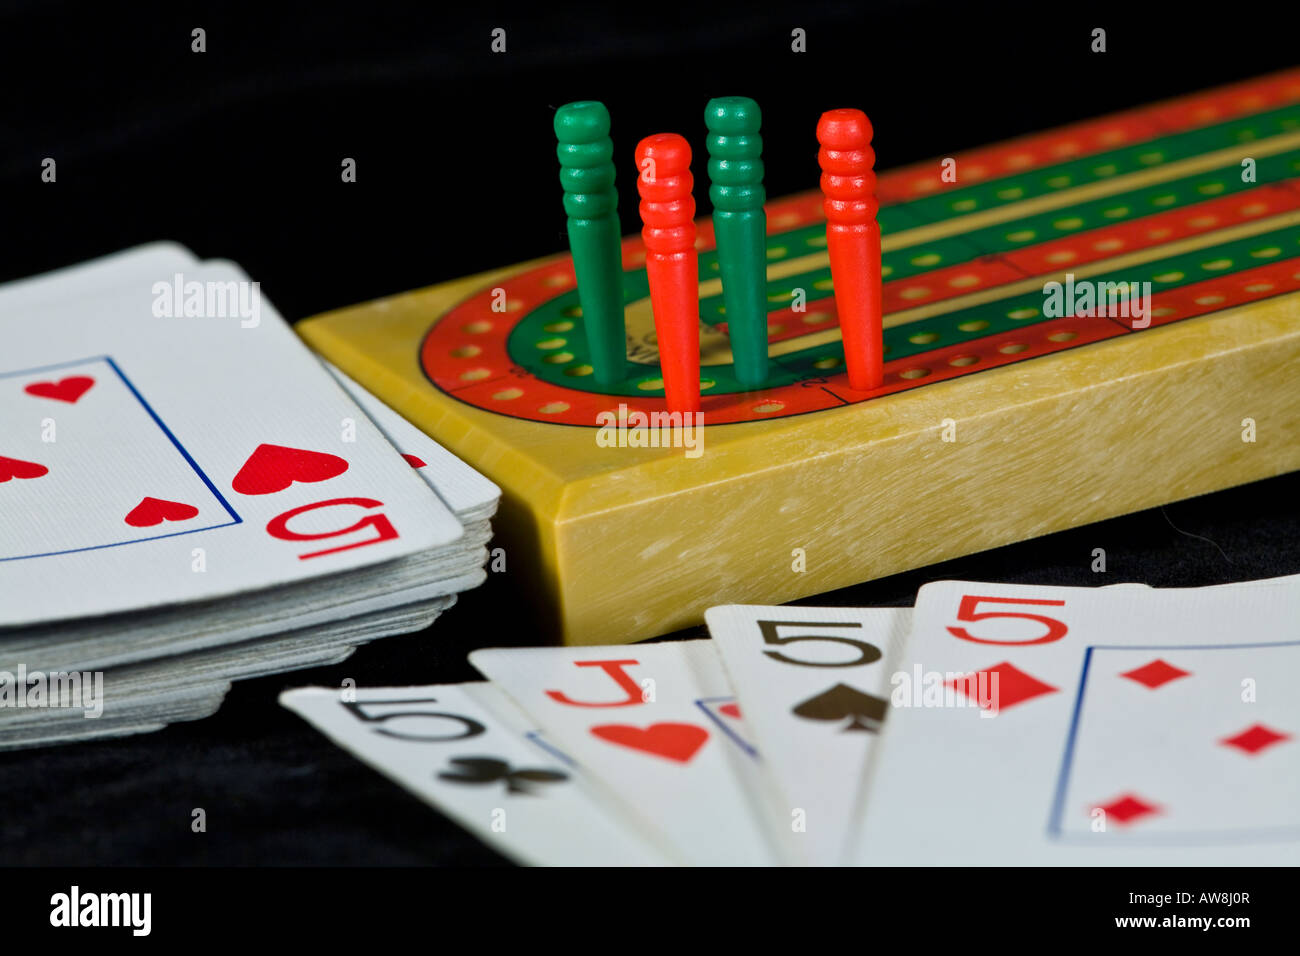 Crib boards for sale uk - A Cribbage Board With Pegs And Playing Cards Stock Image